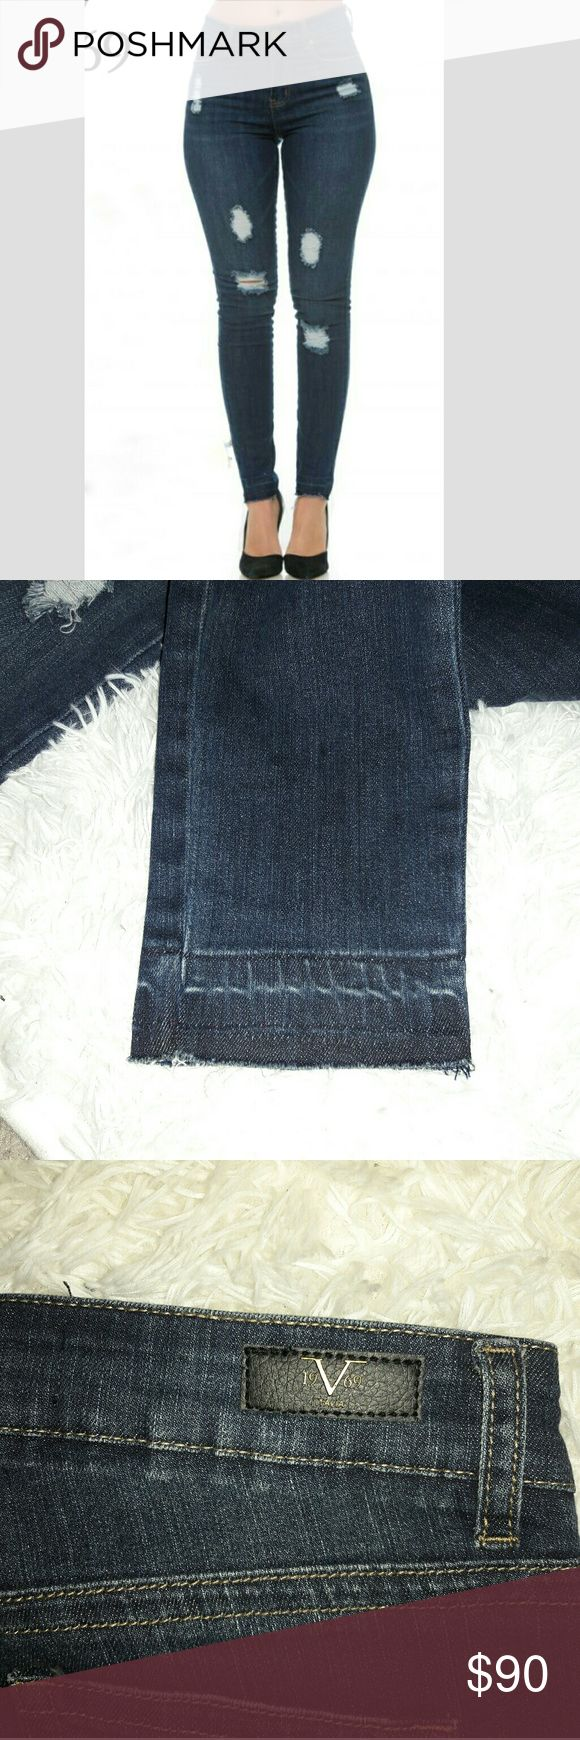 Distressed Versace jeans Classic high wasted Elena skinny style..with spots of distressing going down the front with a undone hem style..has some stretch to them which make them fit absolutely perfect (makes your body look GREAT)..I love mine!!..Can easily be dressed up or down with heels boots or your favorite go to shoes or sneakers..so versatile a comfy..any ?'s Please ask!...a must have that will become your go to jeans :) #trendy #musthave #stylish #19V69 # Versace #designer #jeans…